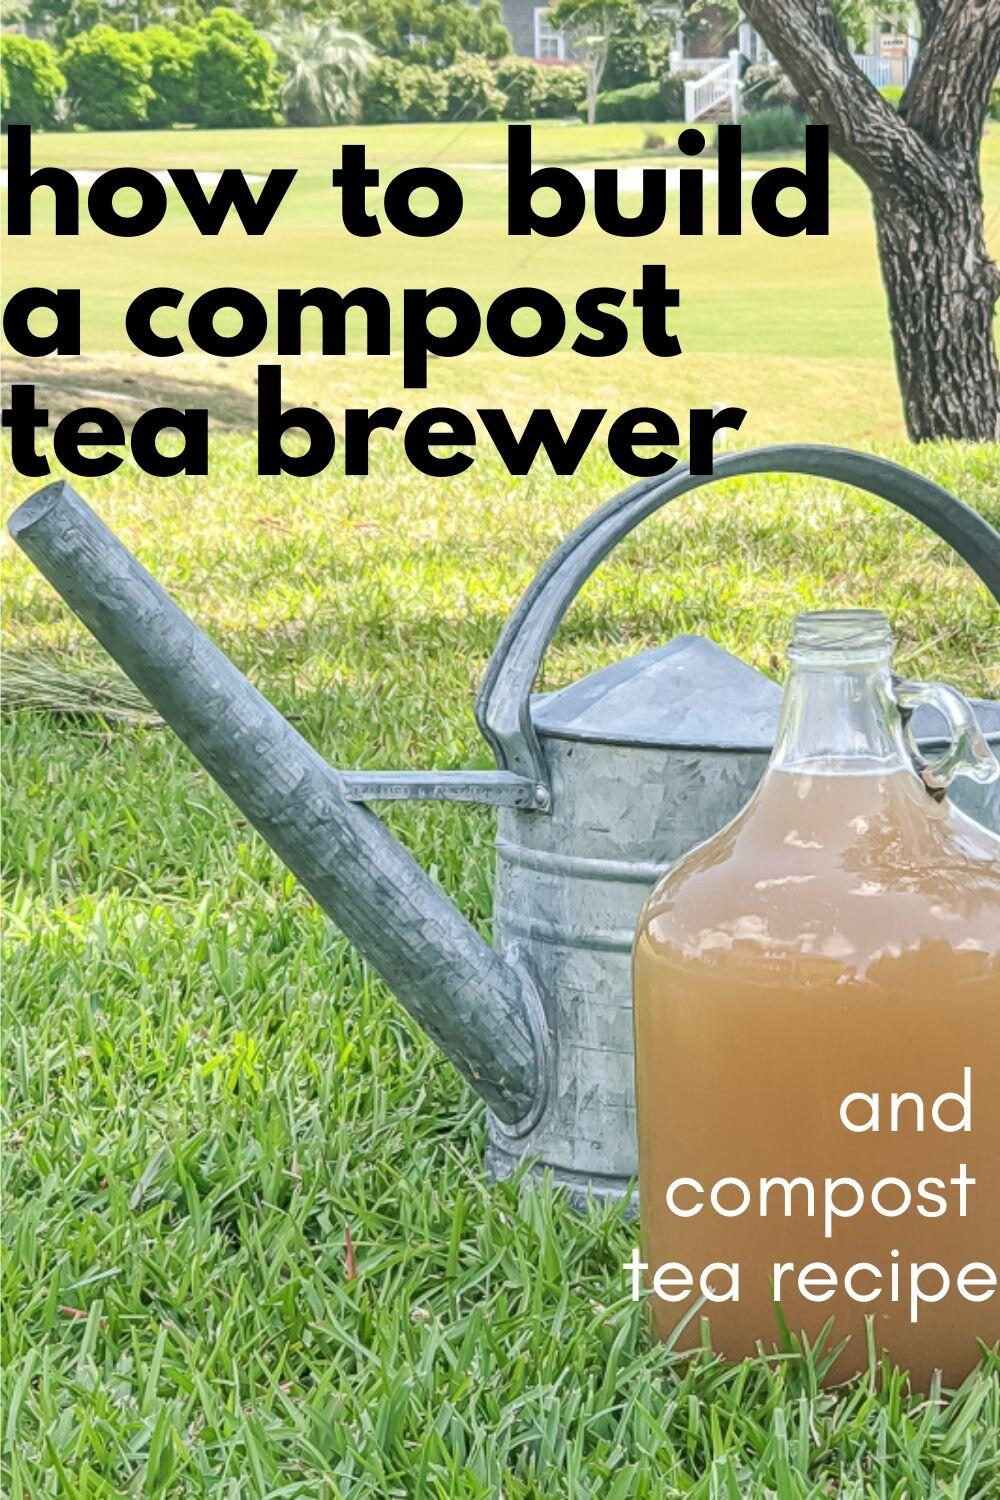 We Swear By The Benefits Of Compost Tea In Our Organic Vegetable Garden In Order To Be Able To Produce Our Own Compo In 2020 Compost Tea Compost Tea Brewer Tea Brewer